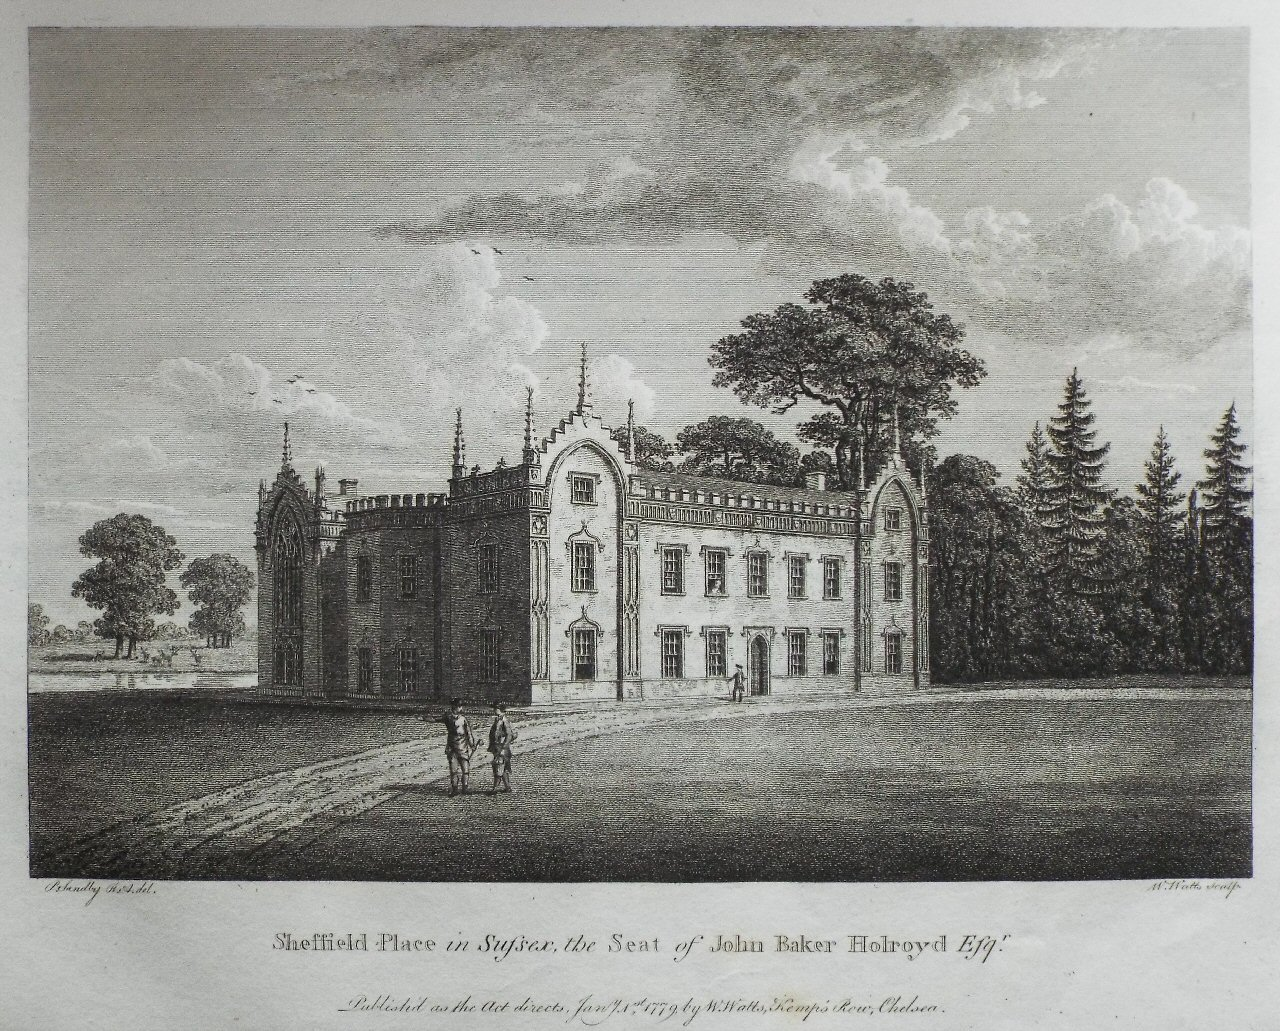 Print - Sheffield Place in Sussex, the Seat of John Baker Holroyd Esqr  - Watts